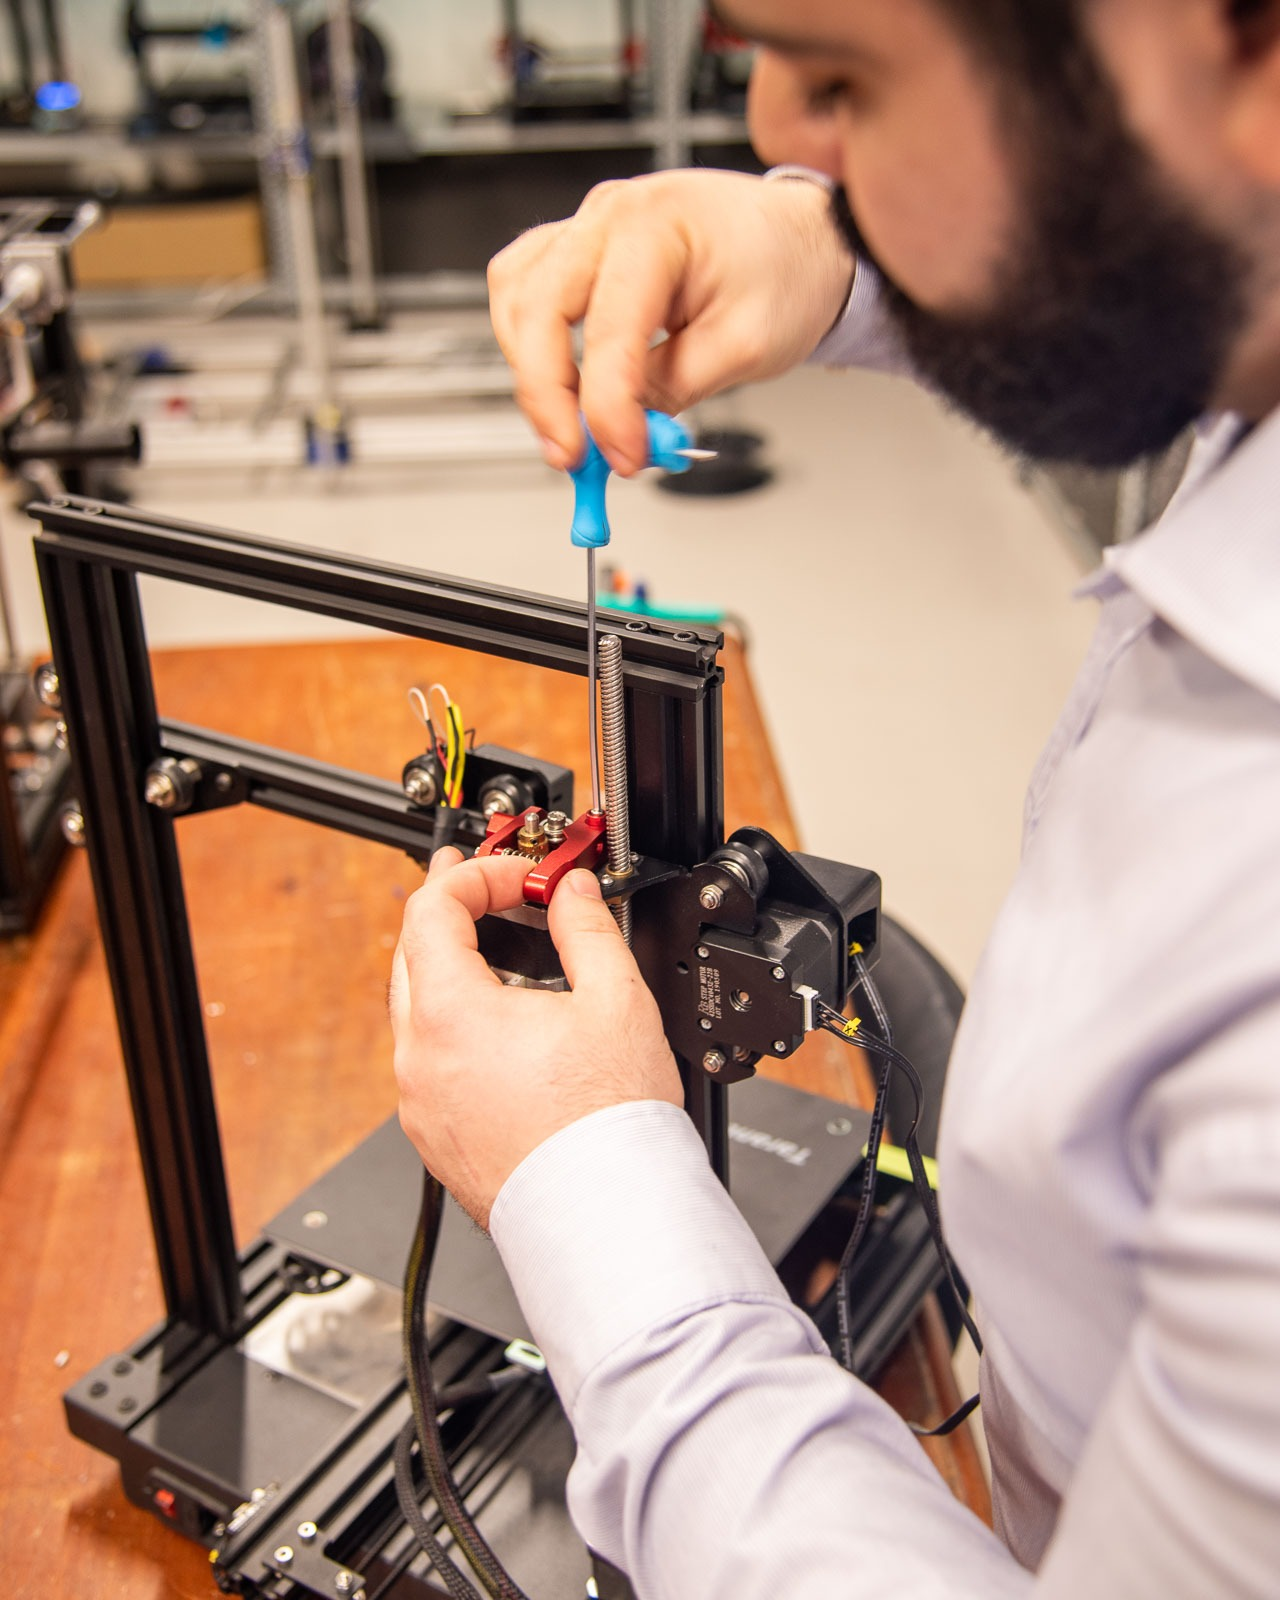 Invent 3D employee fixing 3D printer